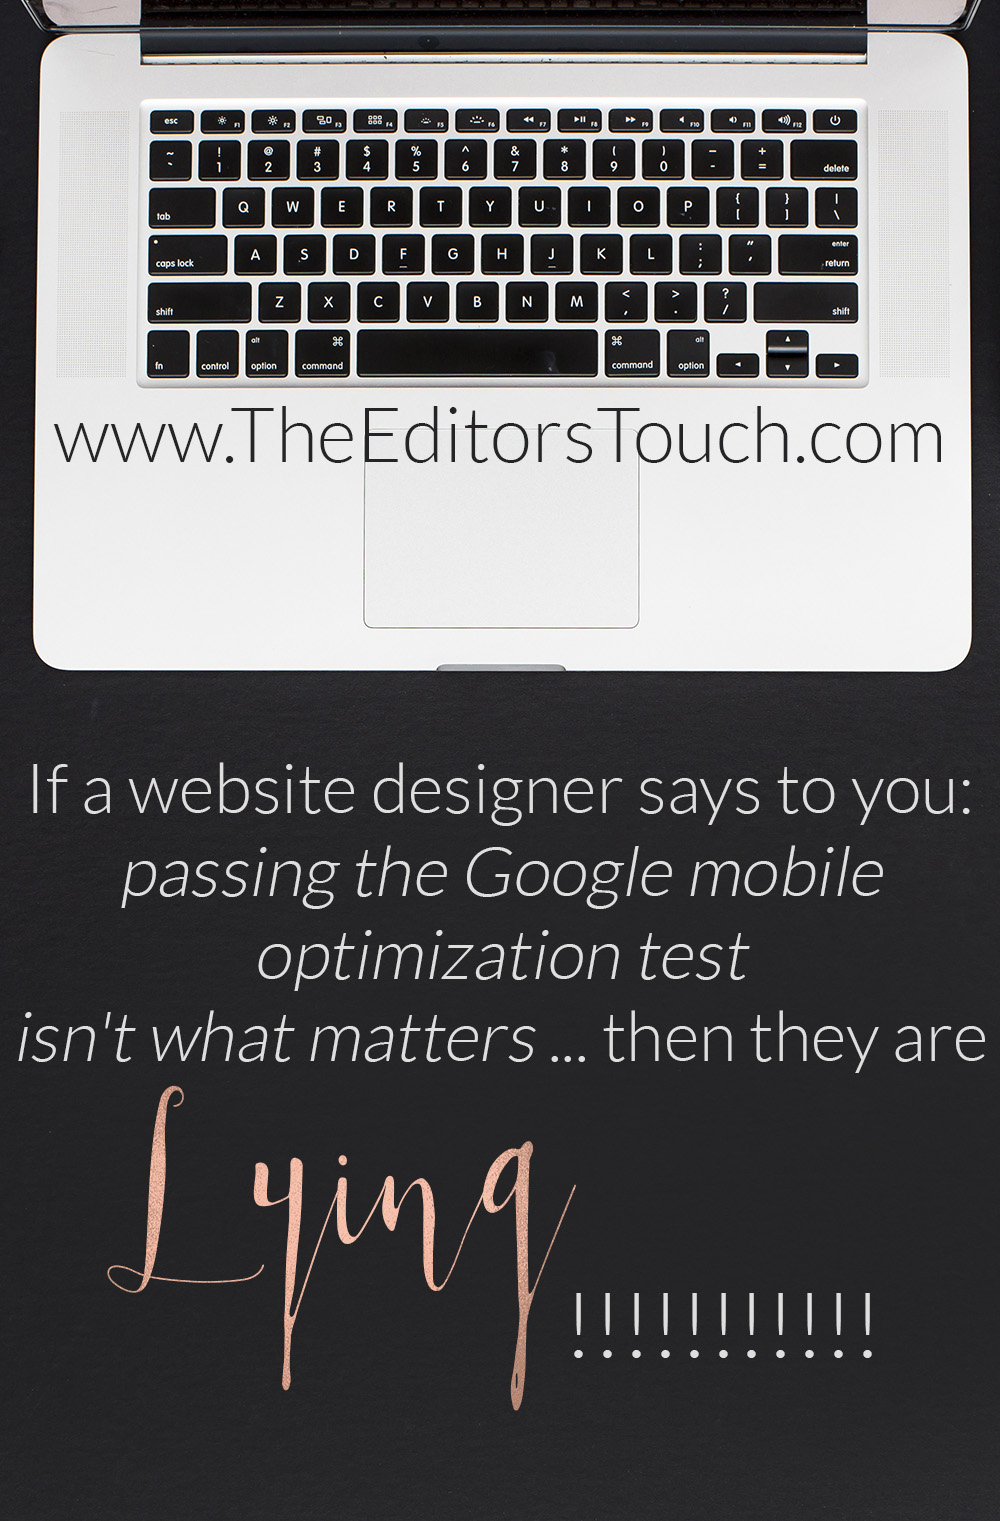 If a website designer says to you: passing the Google mobile optimization test isn't what matters: then they are lying | The Editor's Touch